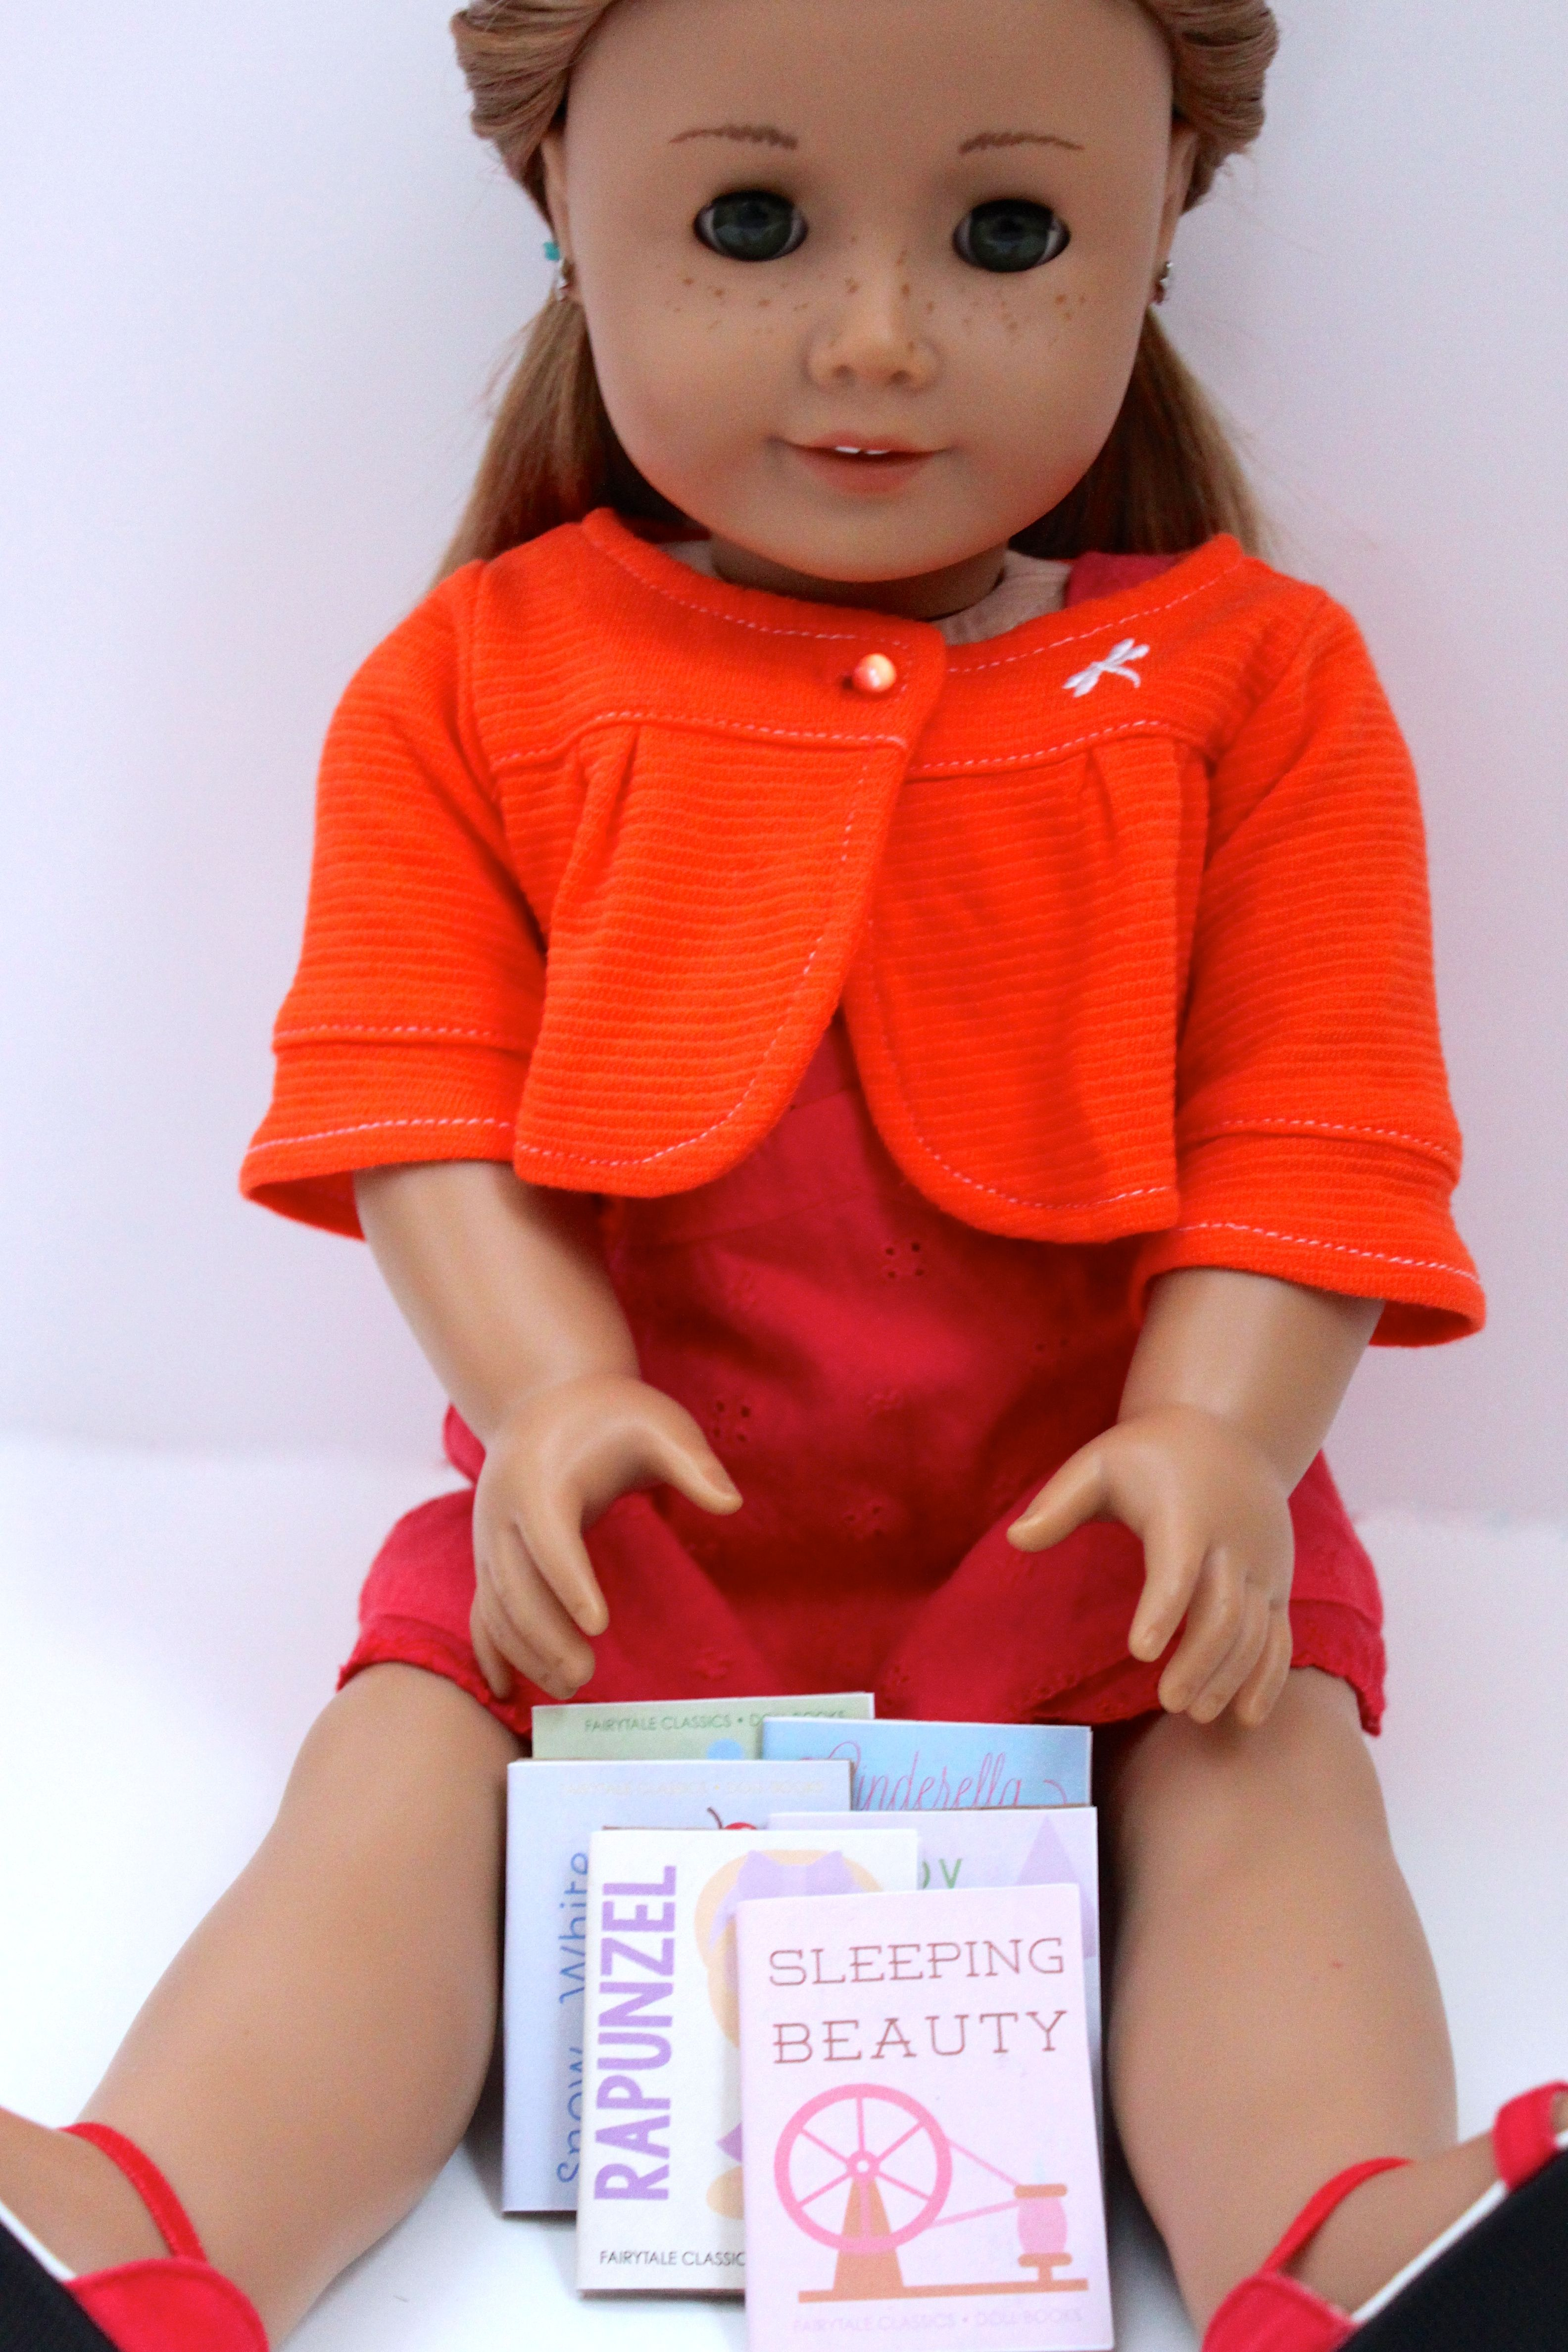 16+ American girl doll crafts book information